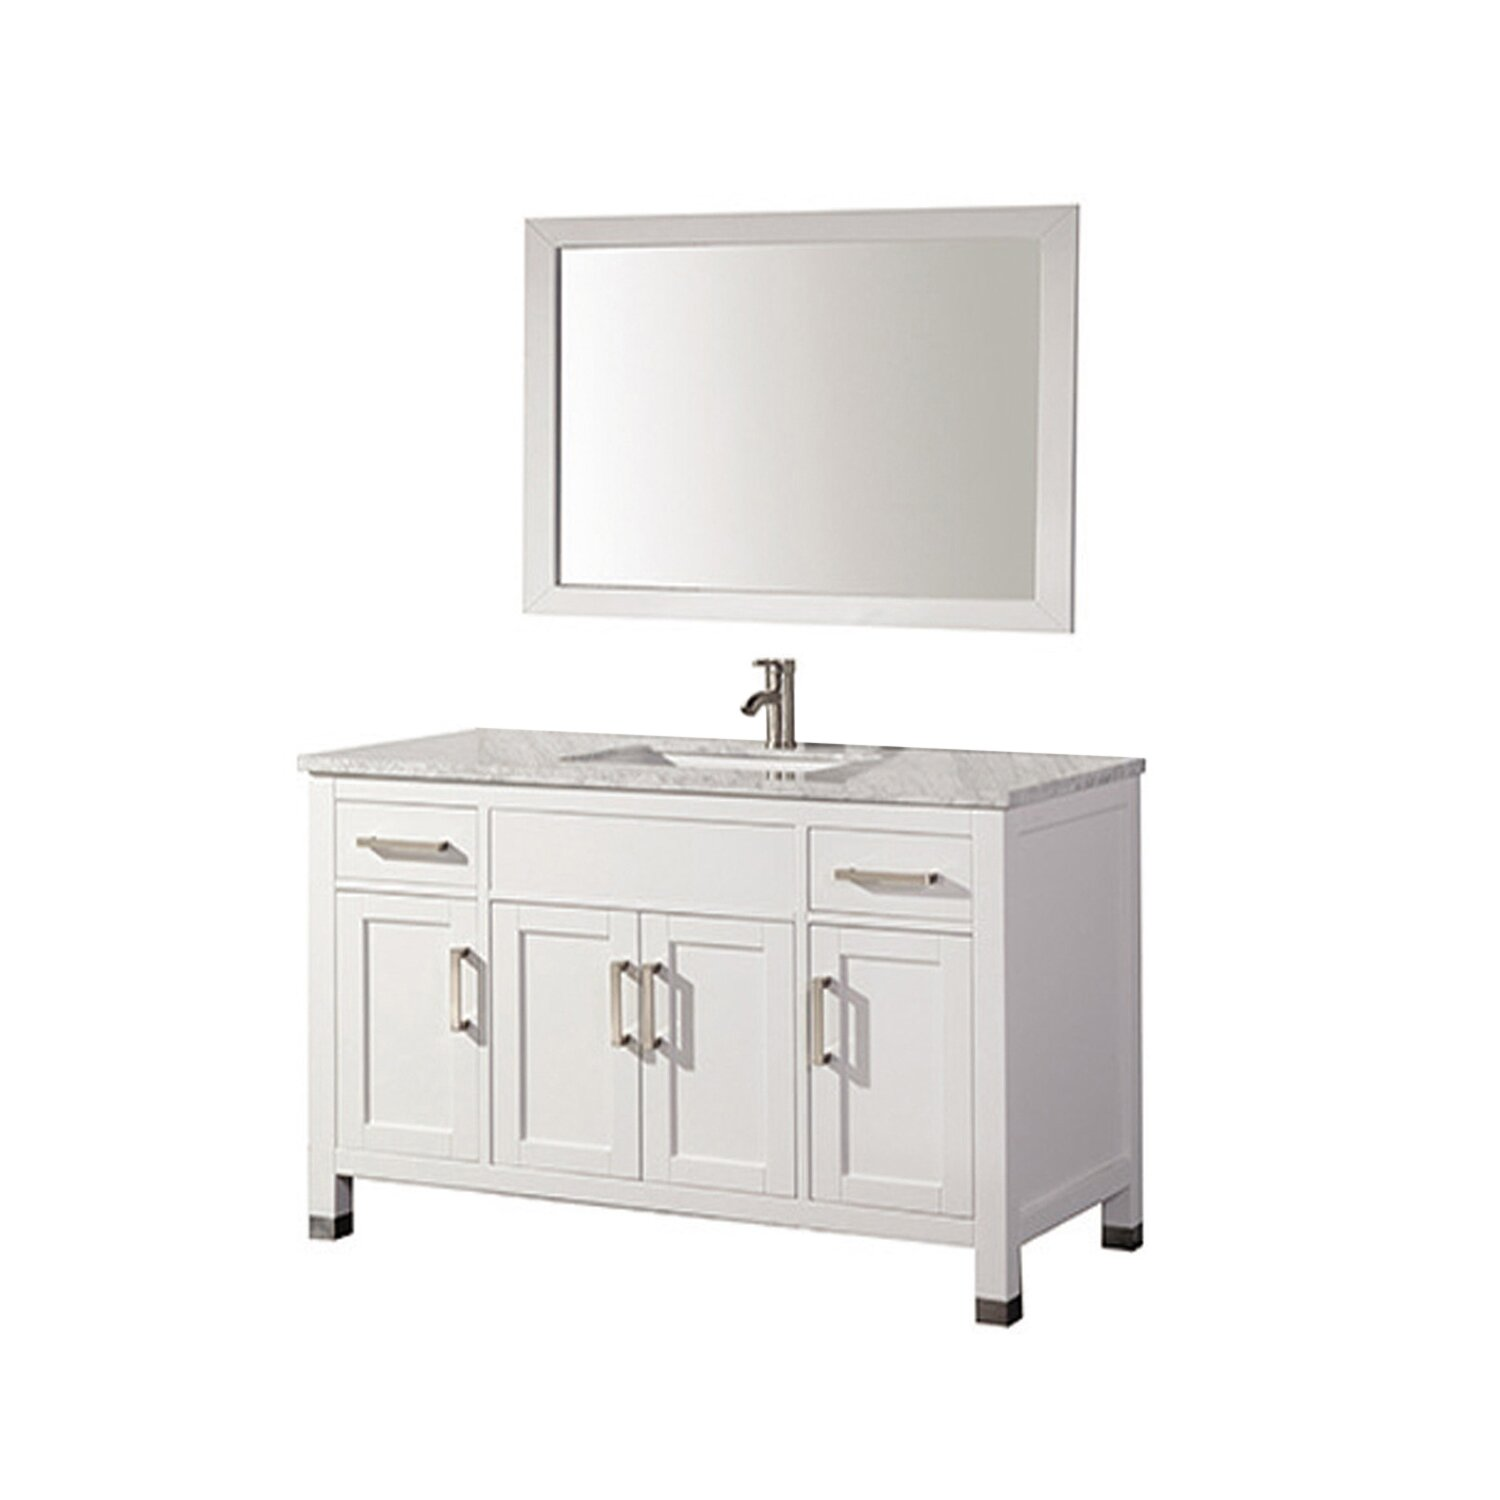 Mtdvanities Ricca 60 Single Sink Bathroom Vanity Set With Mirror Reviews